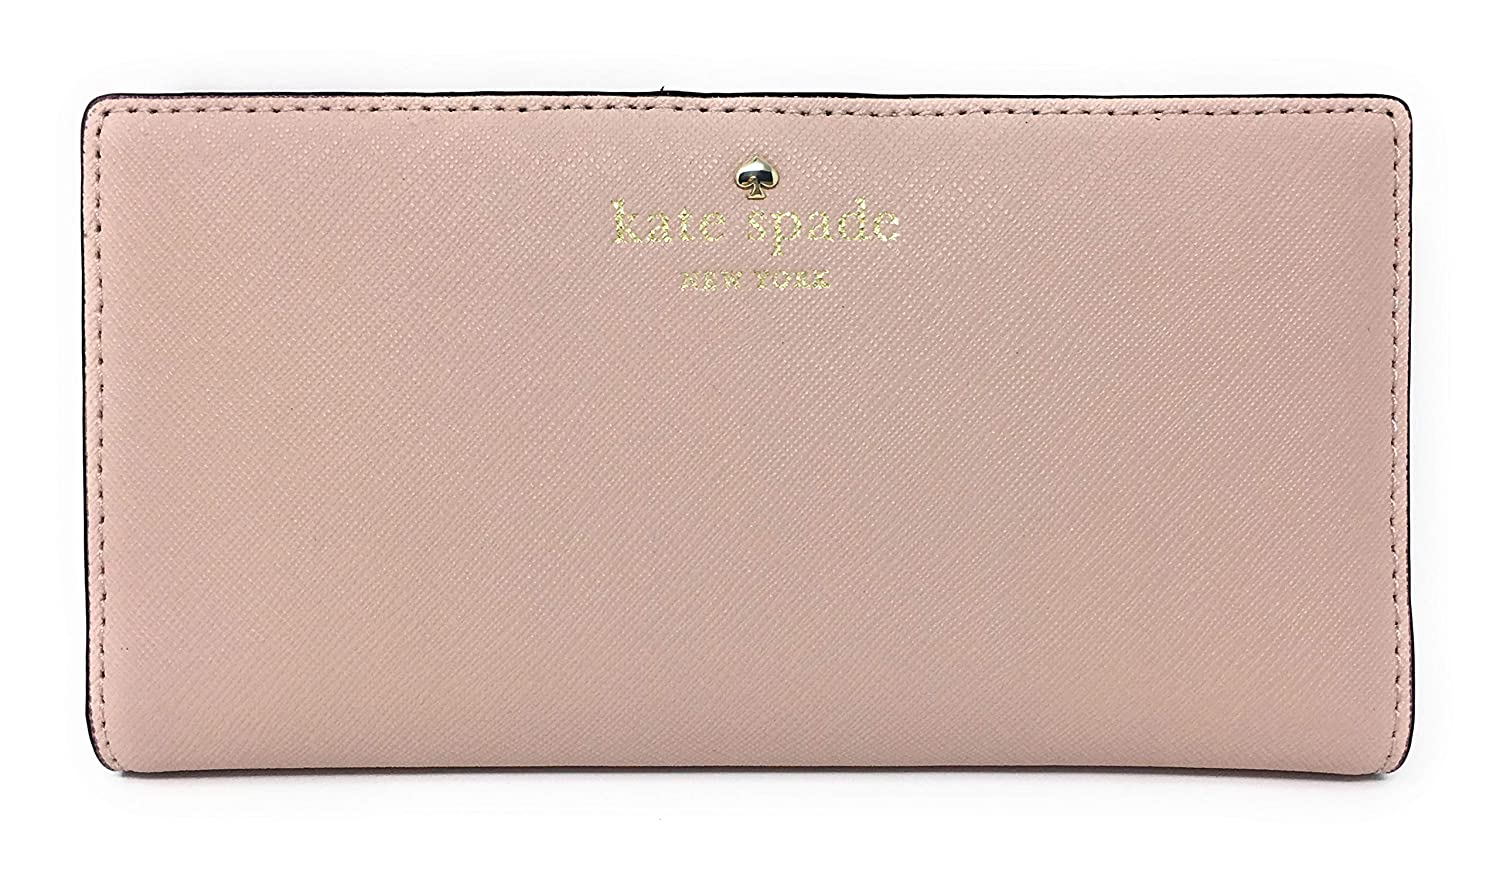 Kate Spade New York Mikas Pond Stacy Saffiano Leather Wallet DDU JP845557